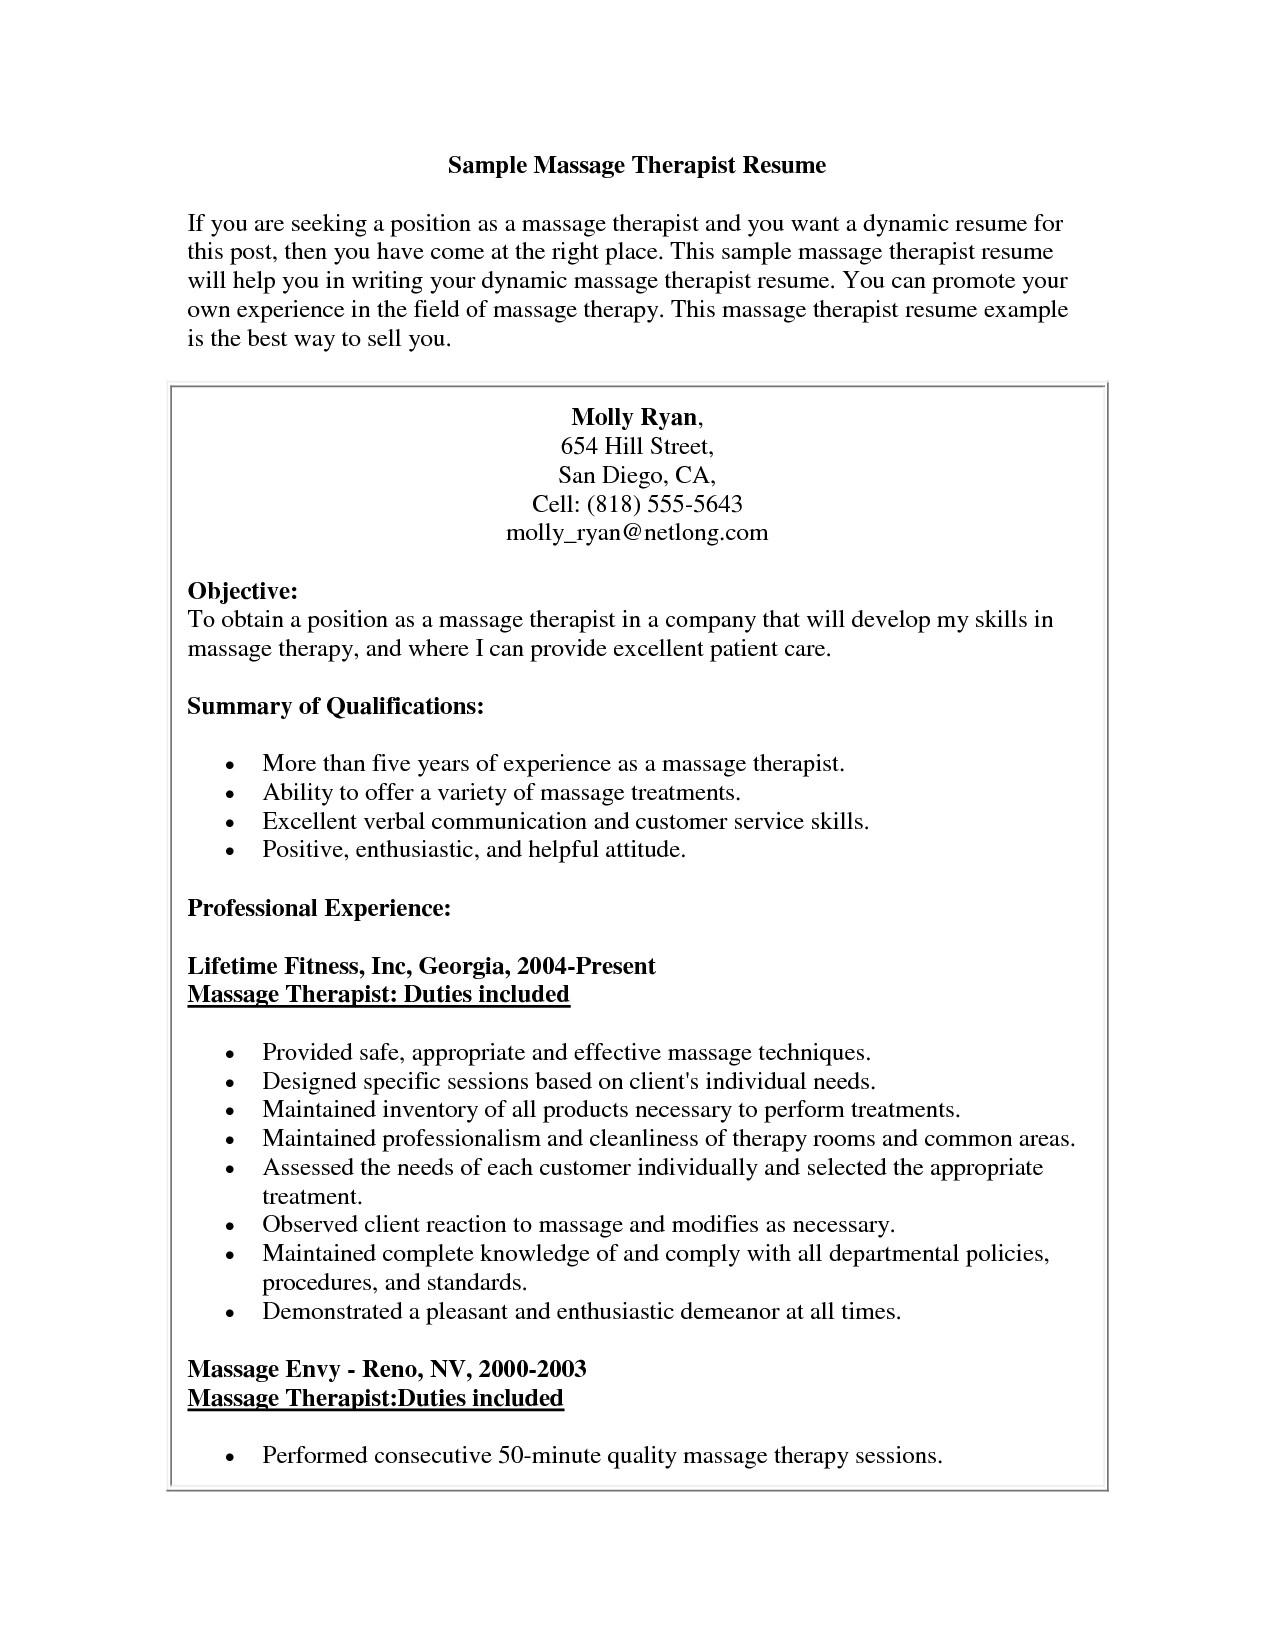 massage therapist resume sample example-Massage therapist Resume Example Beautiful Massage therapist Resume Sample Massage therapist Resume Sample Massage therapist 16-l